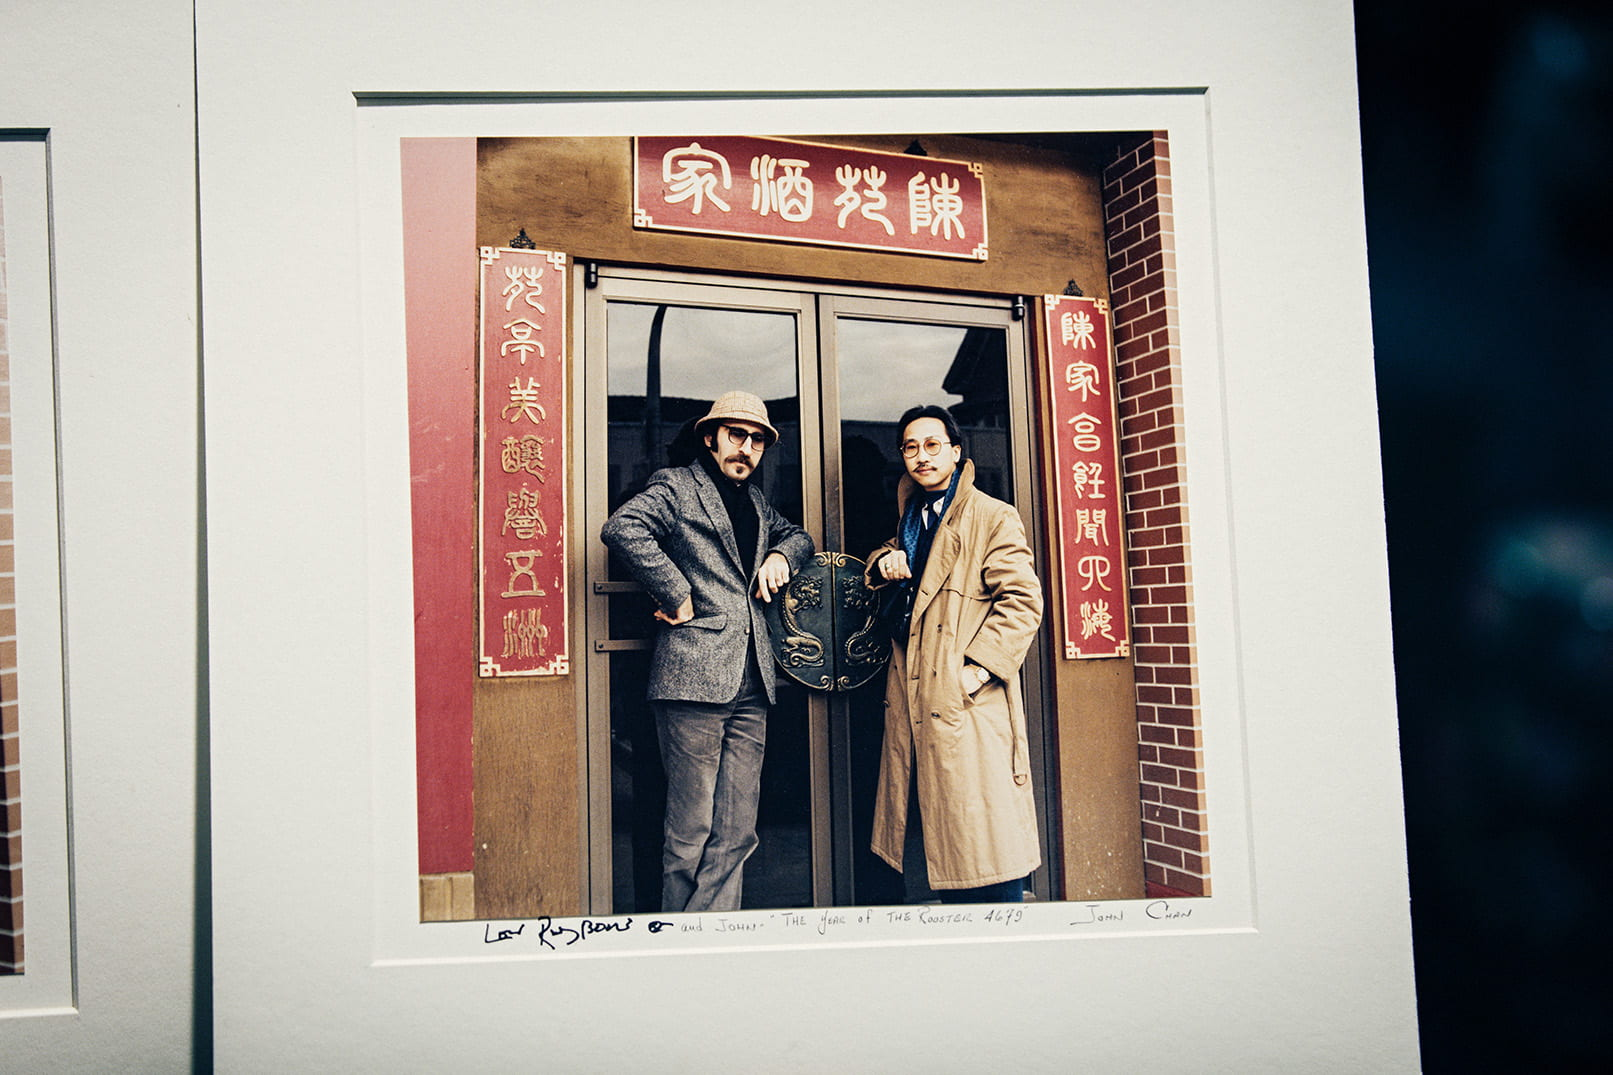 Jazz and blues vocalist Leon Redbone, left, with John Chan '74 outside Chan's in 1981.